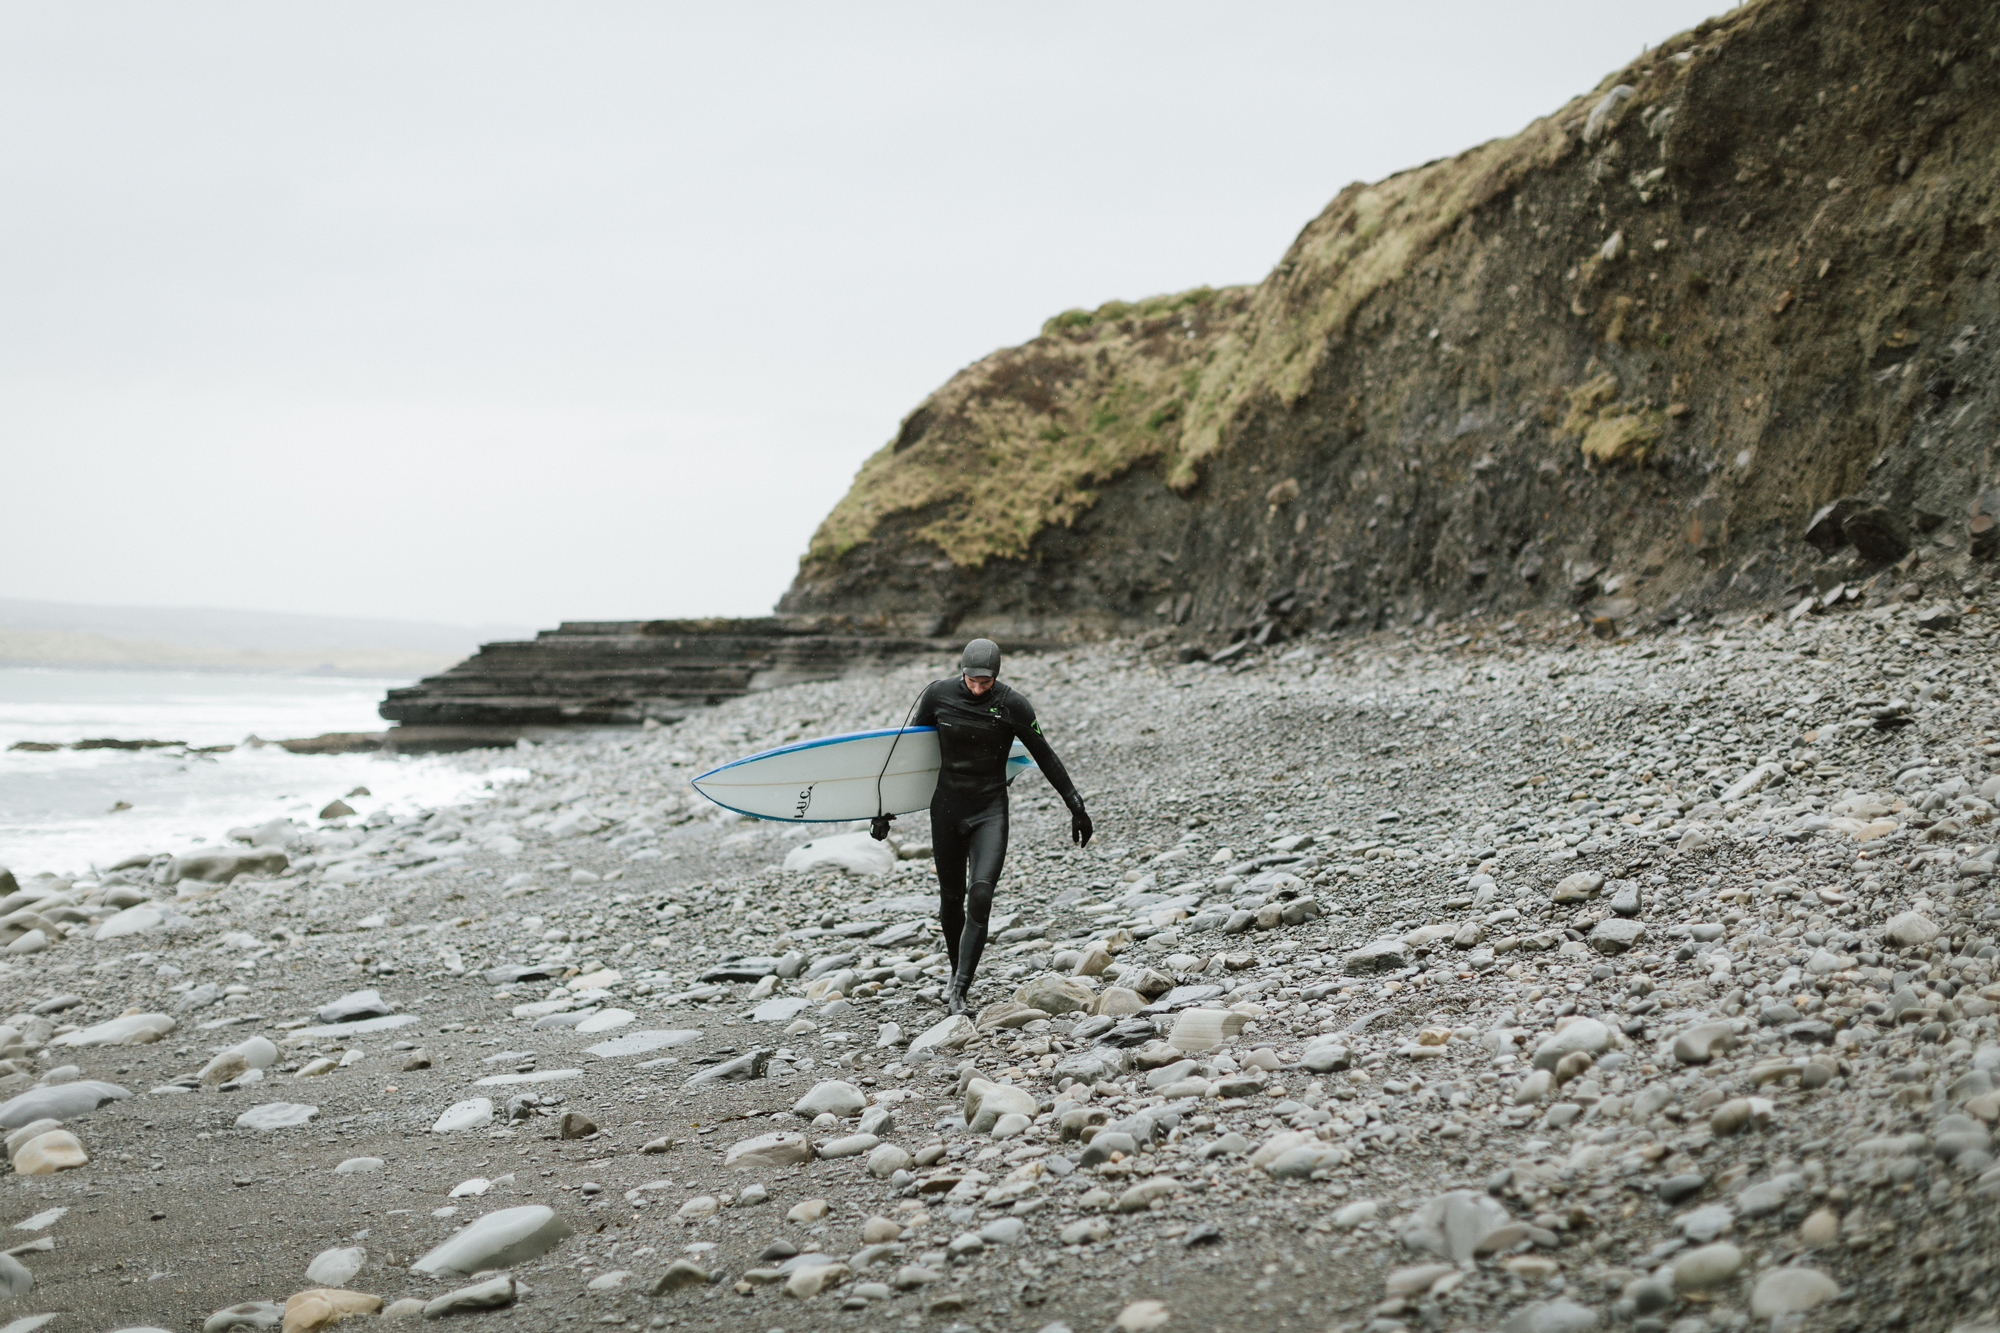 Cold water surfing on Ireland's West coast.